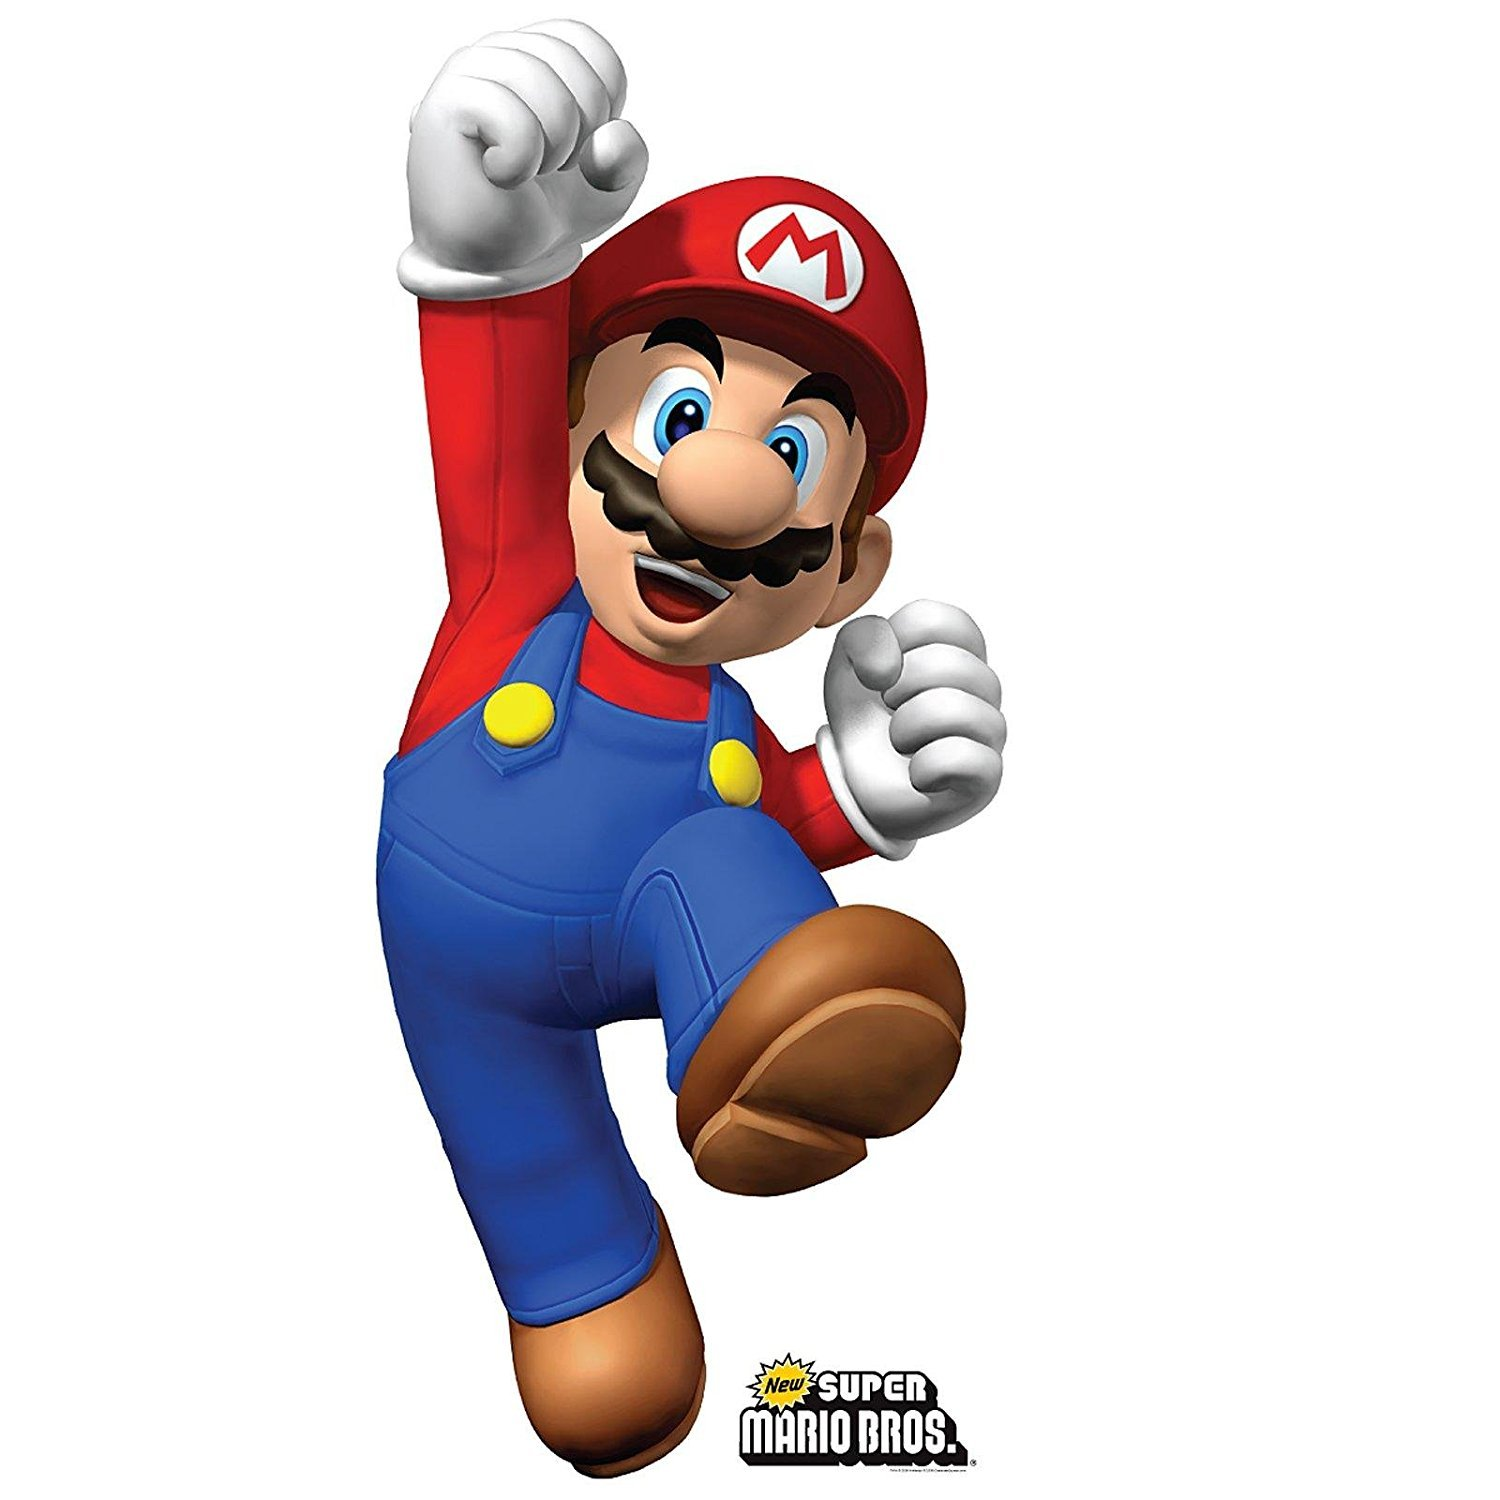 Amazon.com: Super Mario Bros Room Decor – Mario Life Size ...